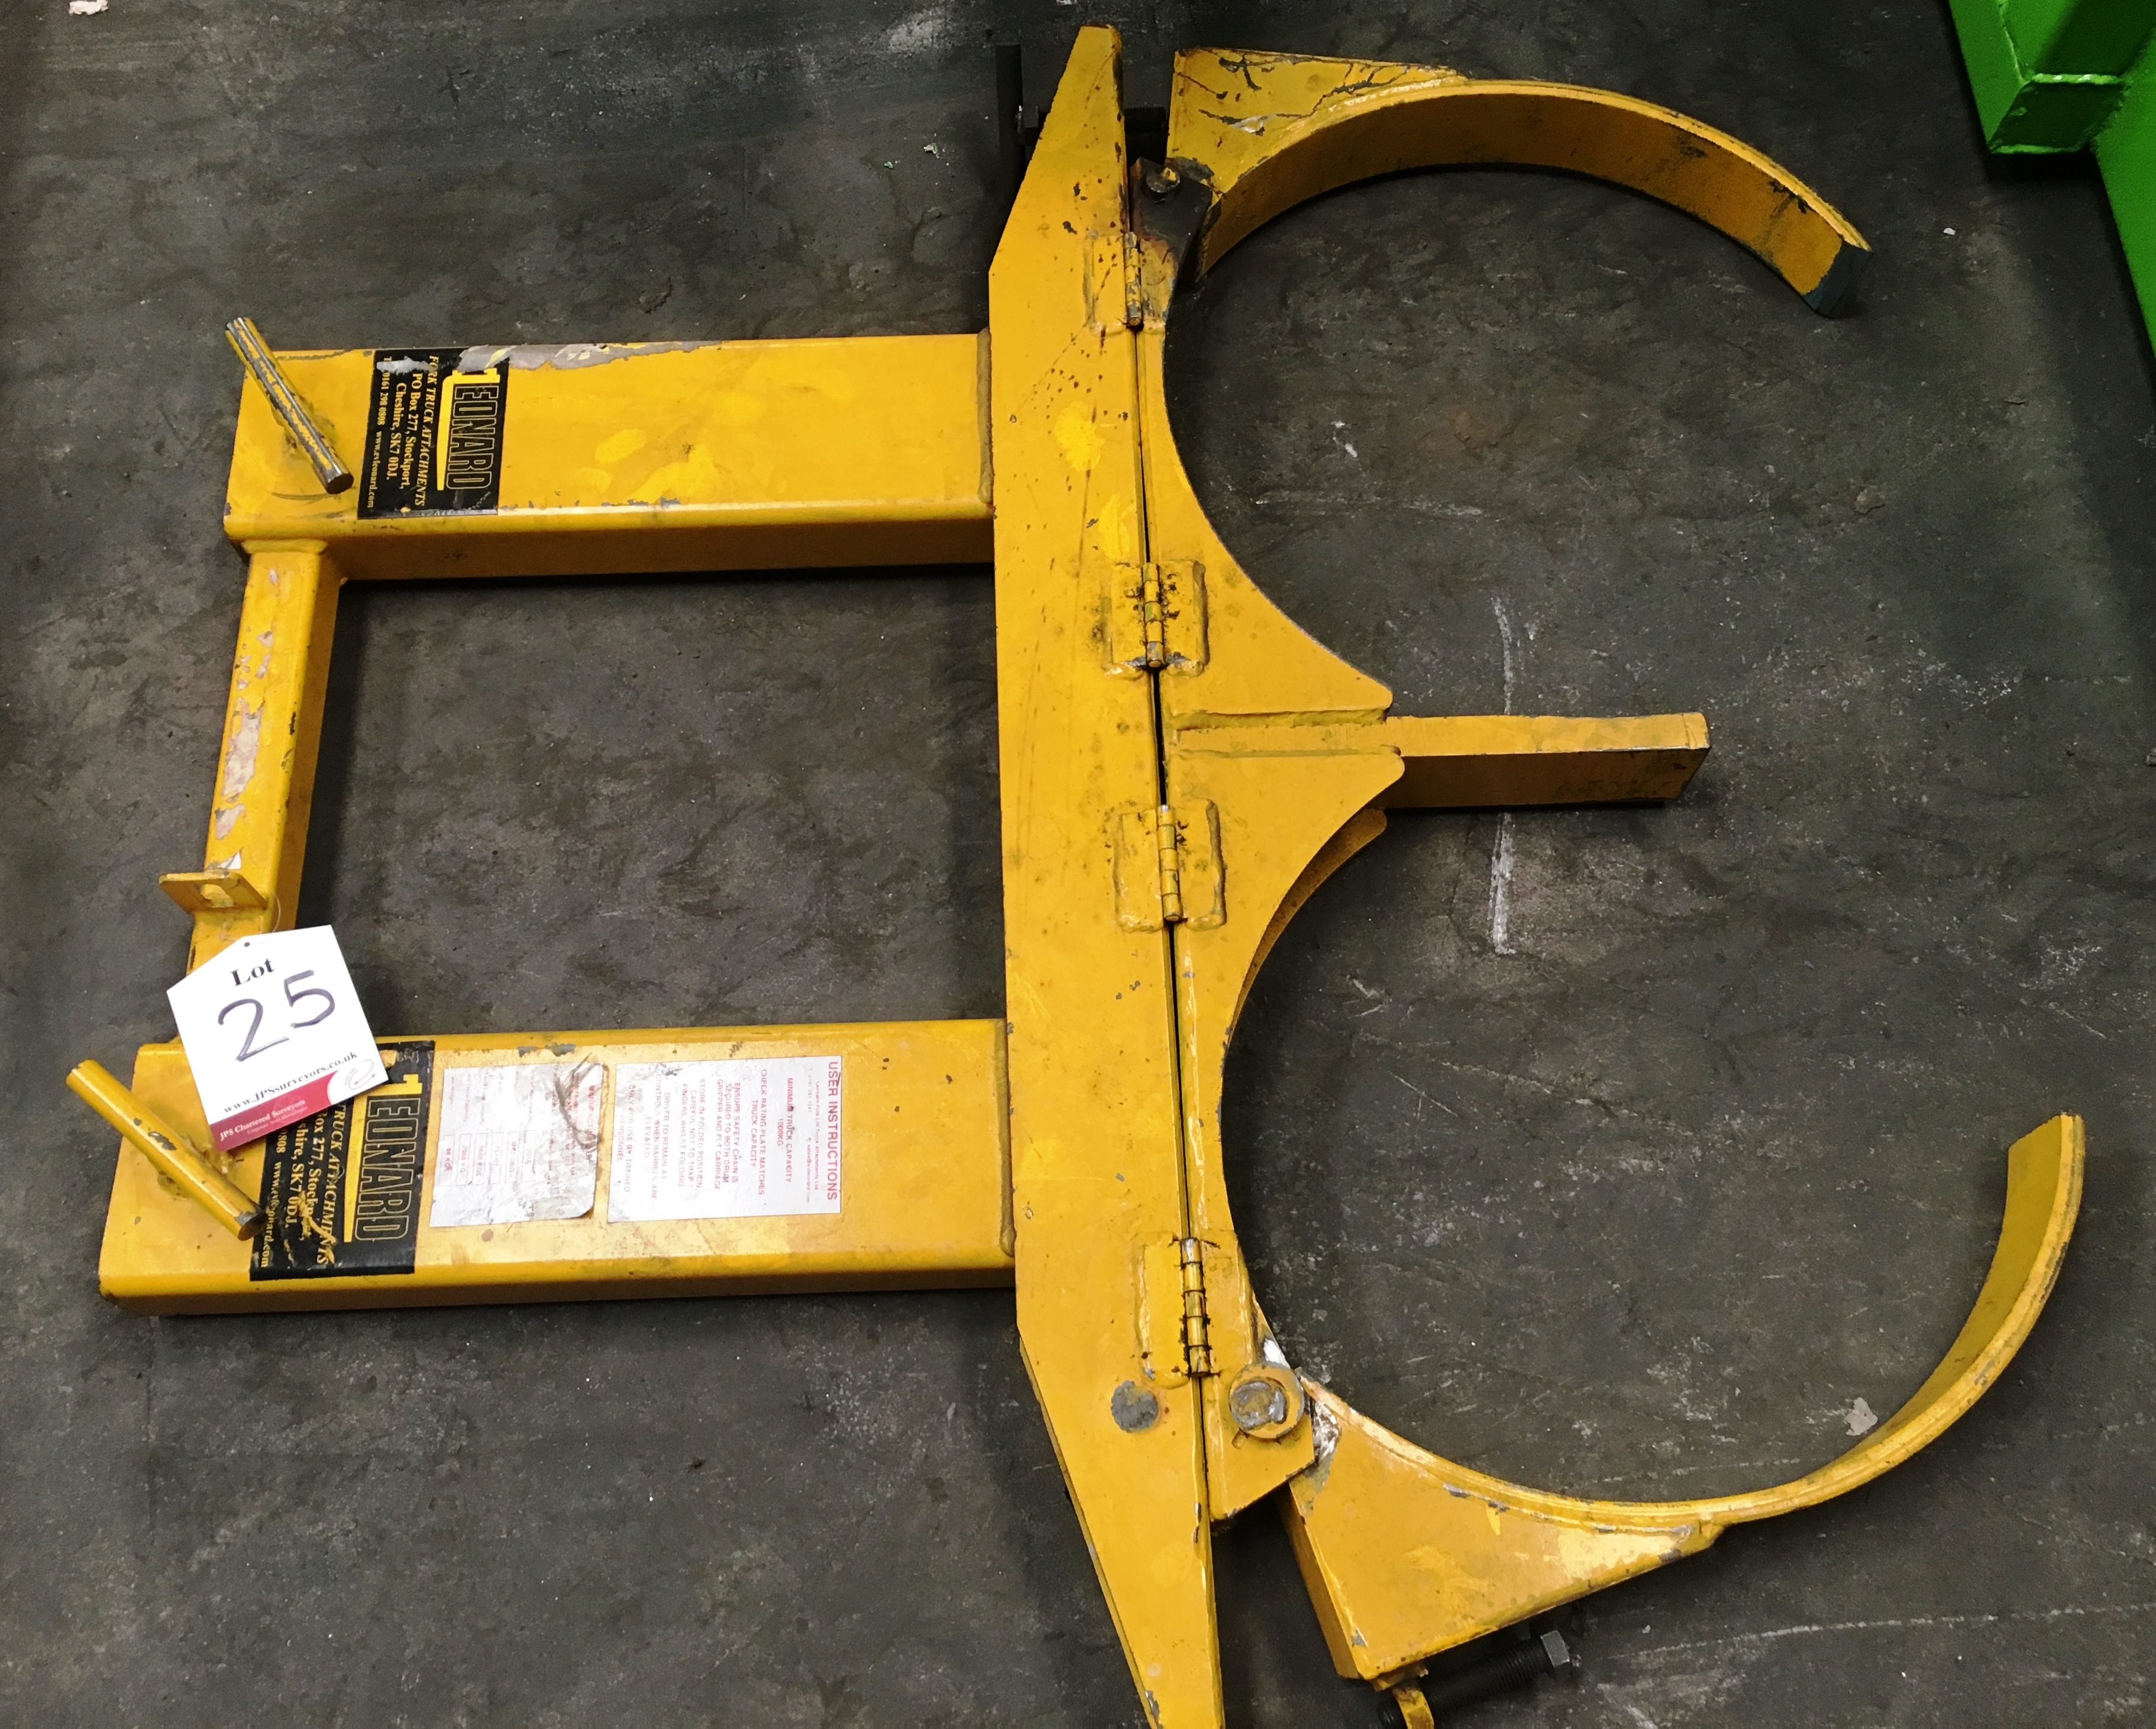 Lot 25 - Leonard Fork Mounted Dual Drum Lifter Attachment